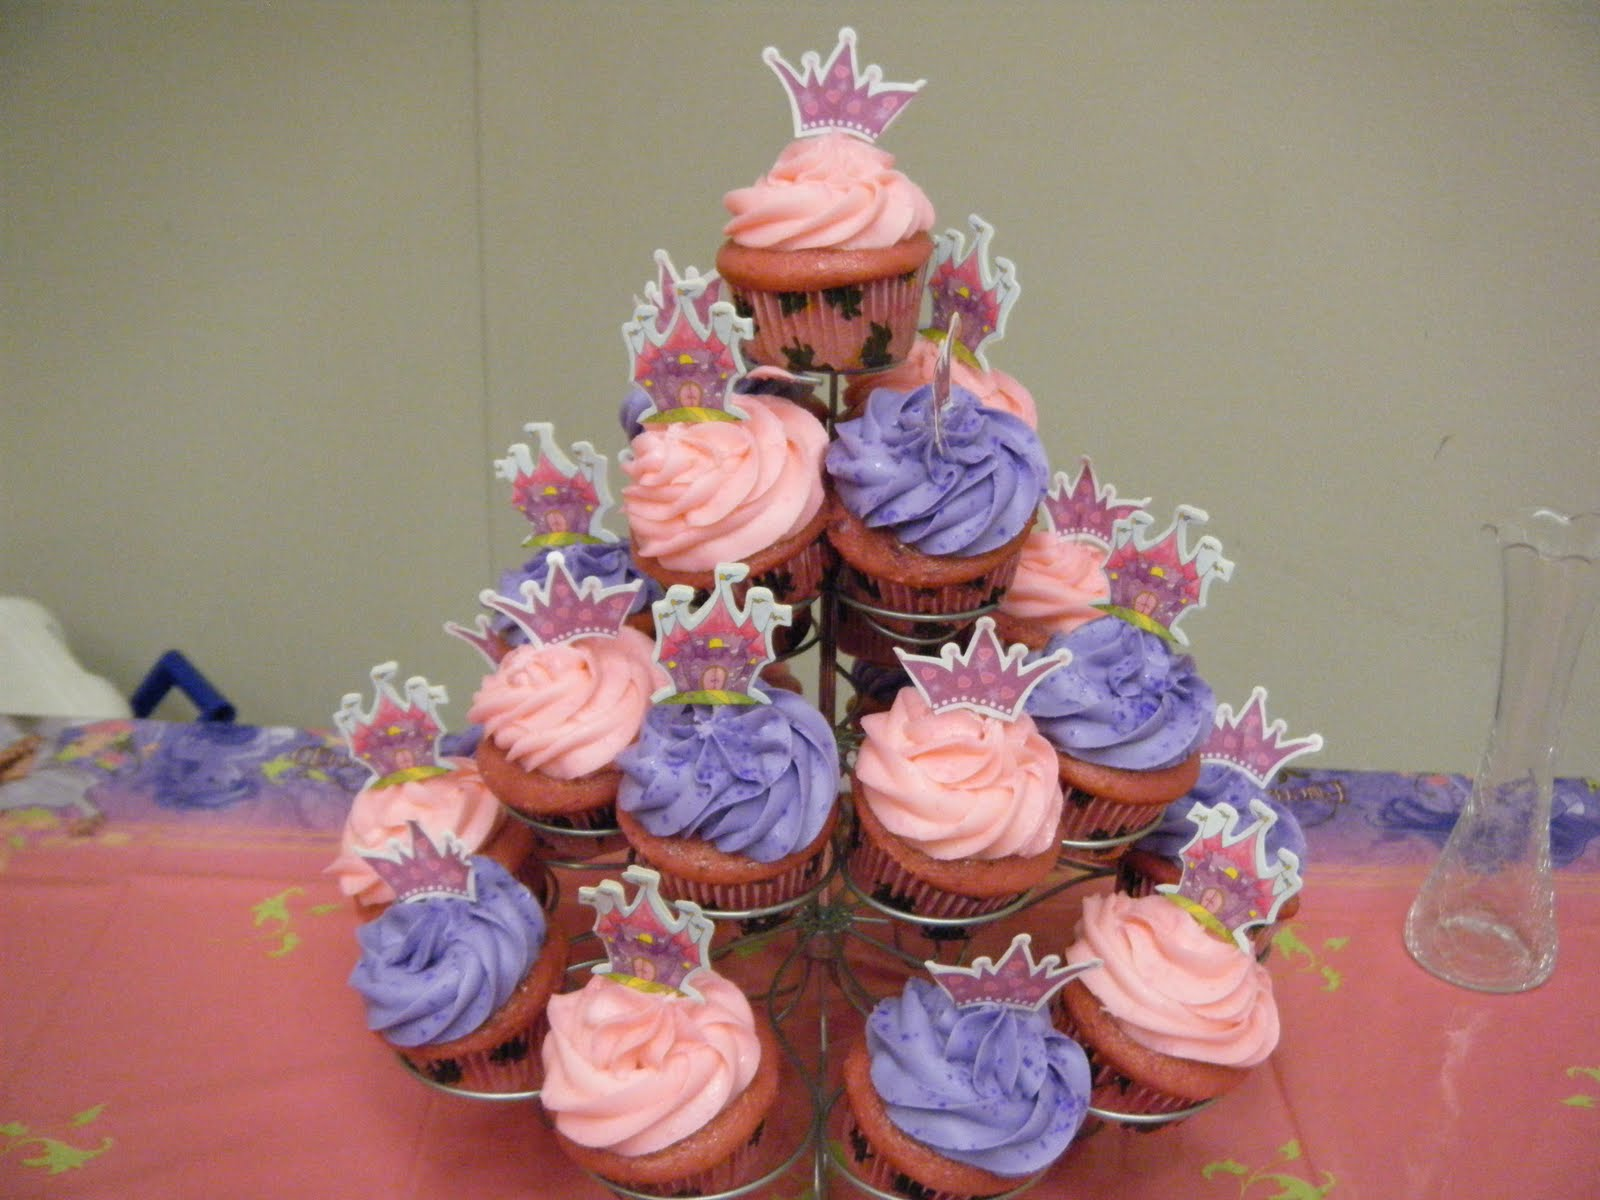 Cupcake Decorating Ideas For Bridal Shower : Sophisticake: Bridal Shower Cupcakes